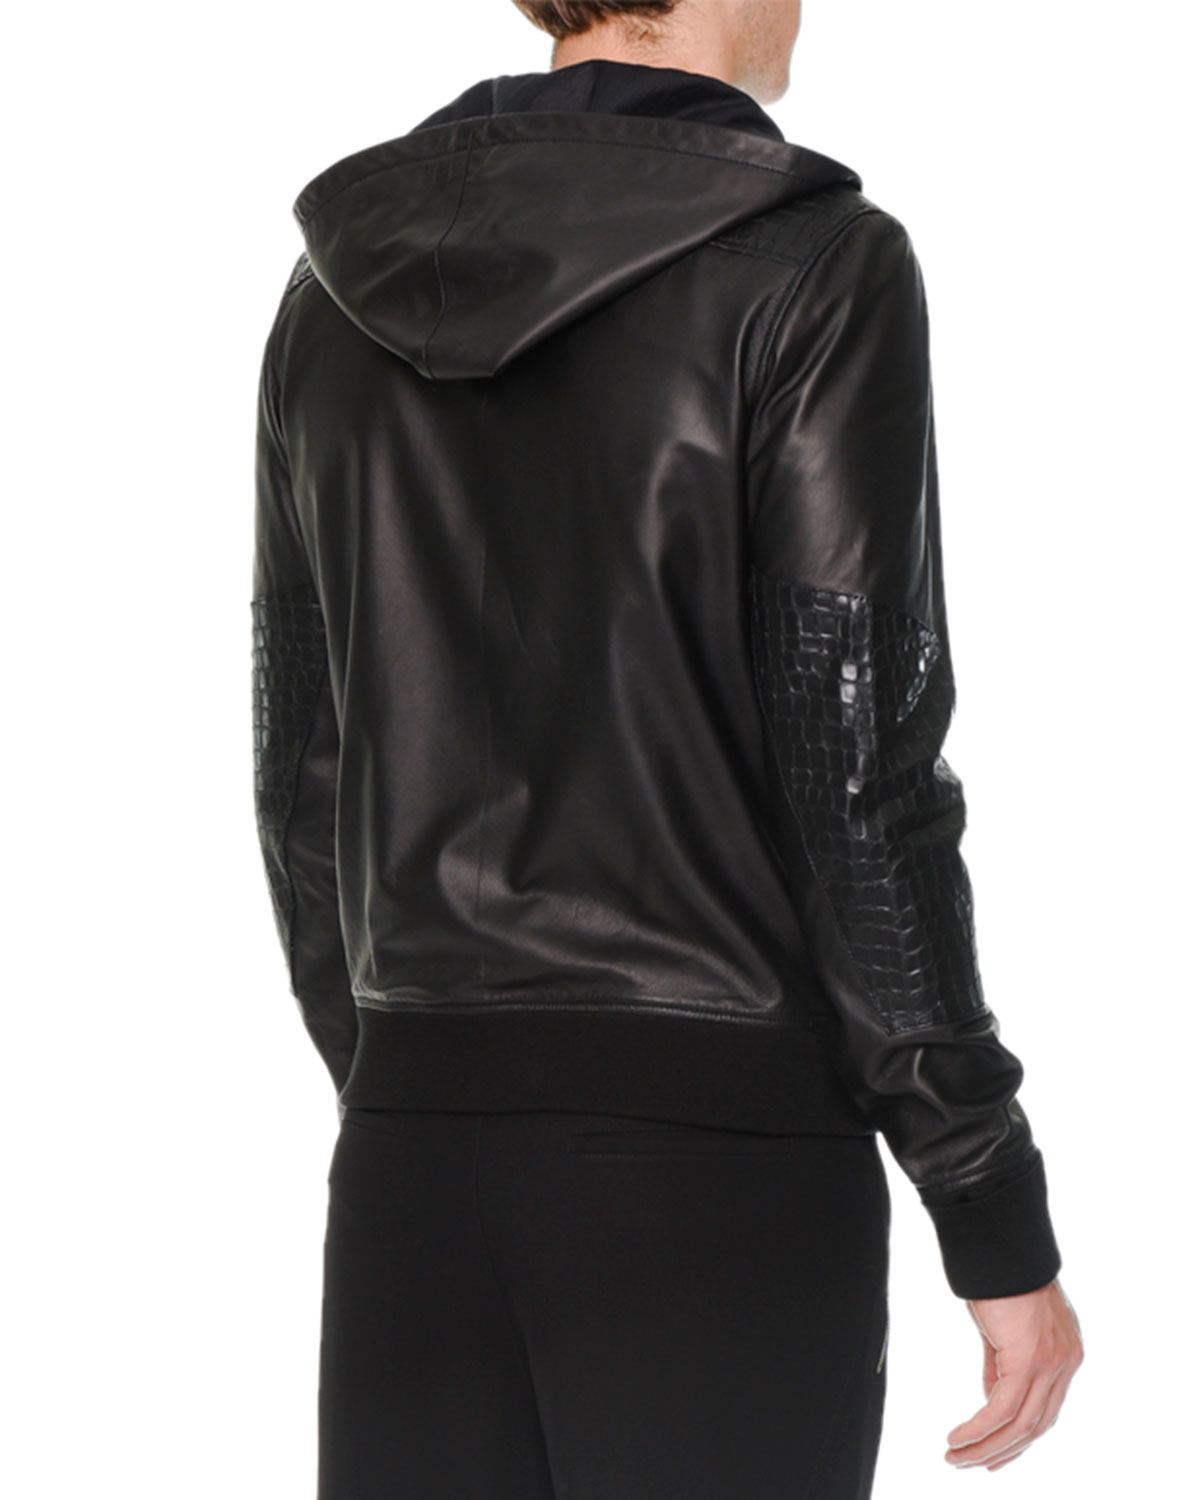 Alexander mcqueen Crocembossed Leather Hoodie in Black